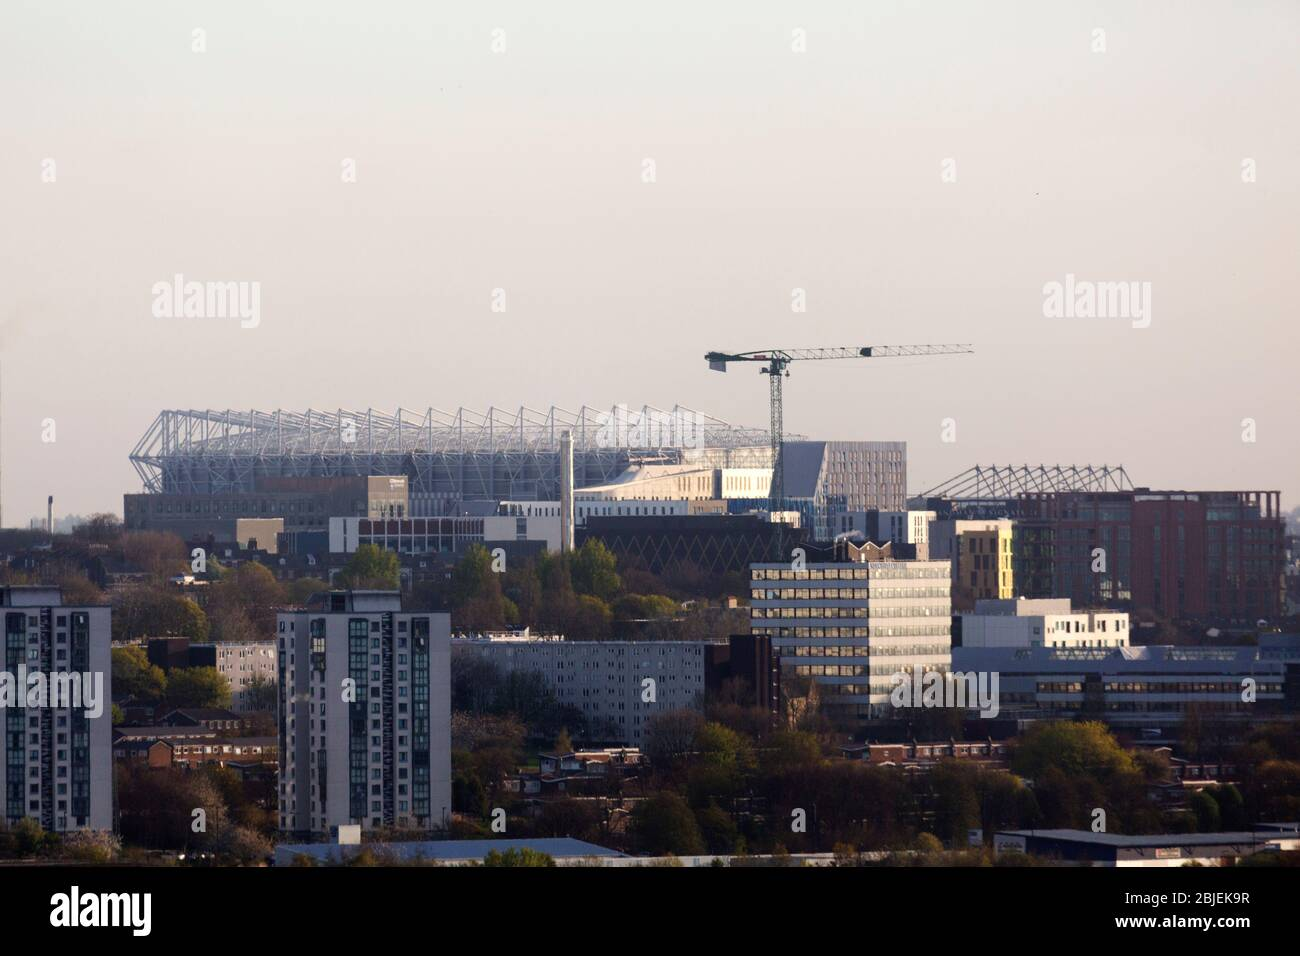 Buildings in Newcastle upon Tyne, England. The skyline includes residential tower blocks and the St James' Park football stadium. Stock Photo